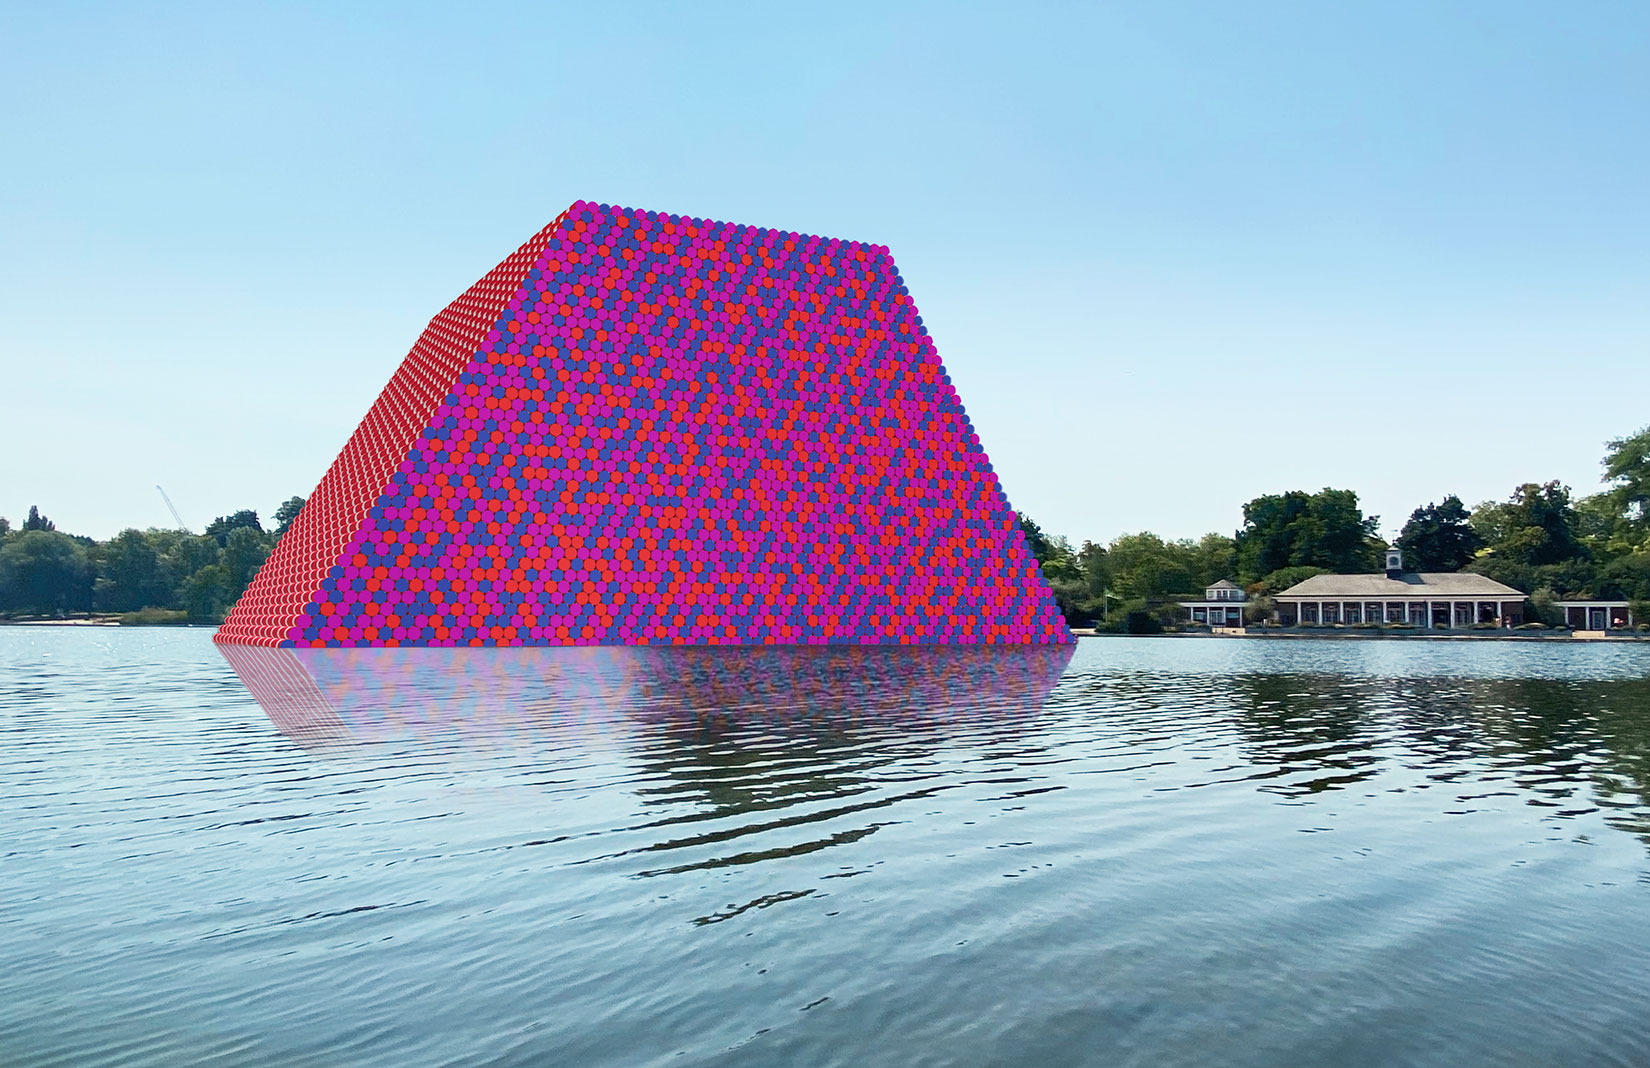 Christo and Jeanne-Claude's 'London Mastaba' virtual experience